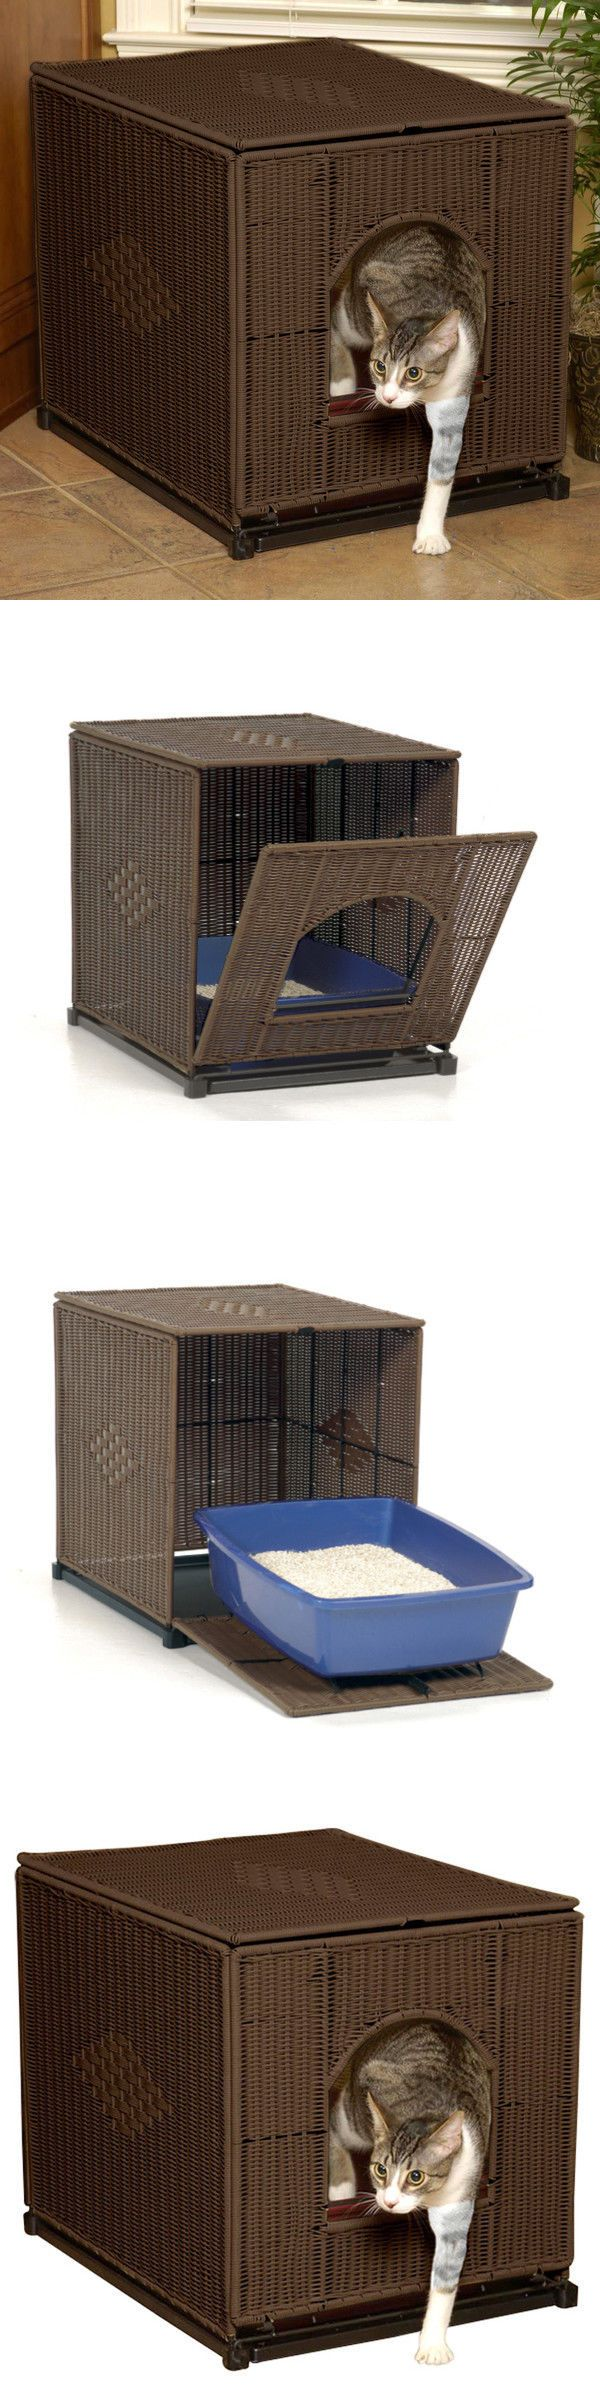 Litter Boxes 100411: Hidden Kitty Litter Box Cover Enclosure Crate Wicker Like Extra Large Jumbo Cat -> BUY IT NOW ONLY: $110.17 on eBay!